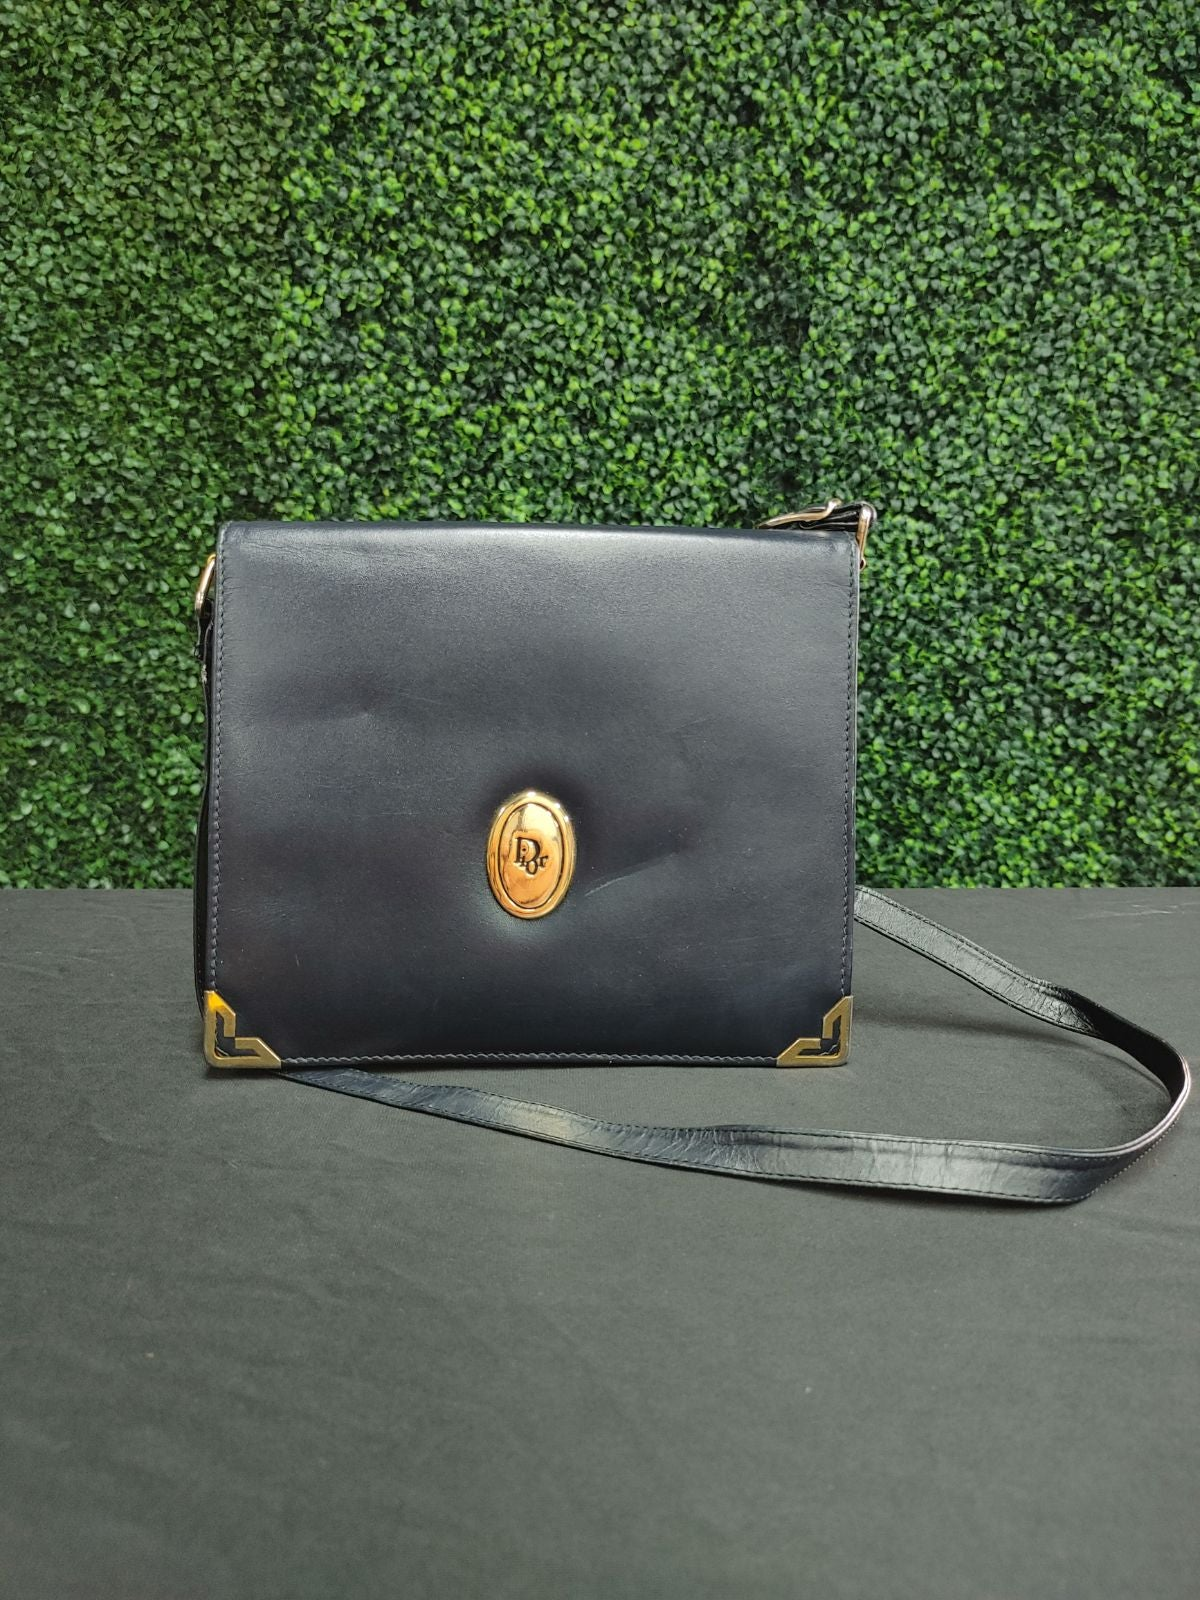 Vintage Christian Dior Shoulder Bag